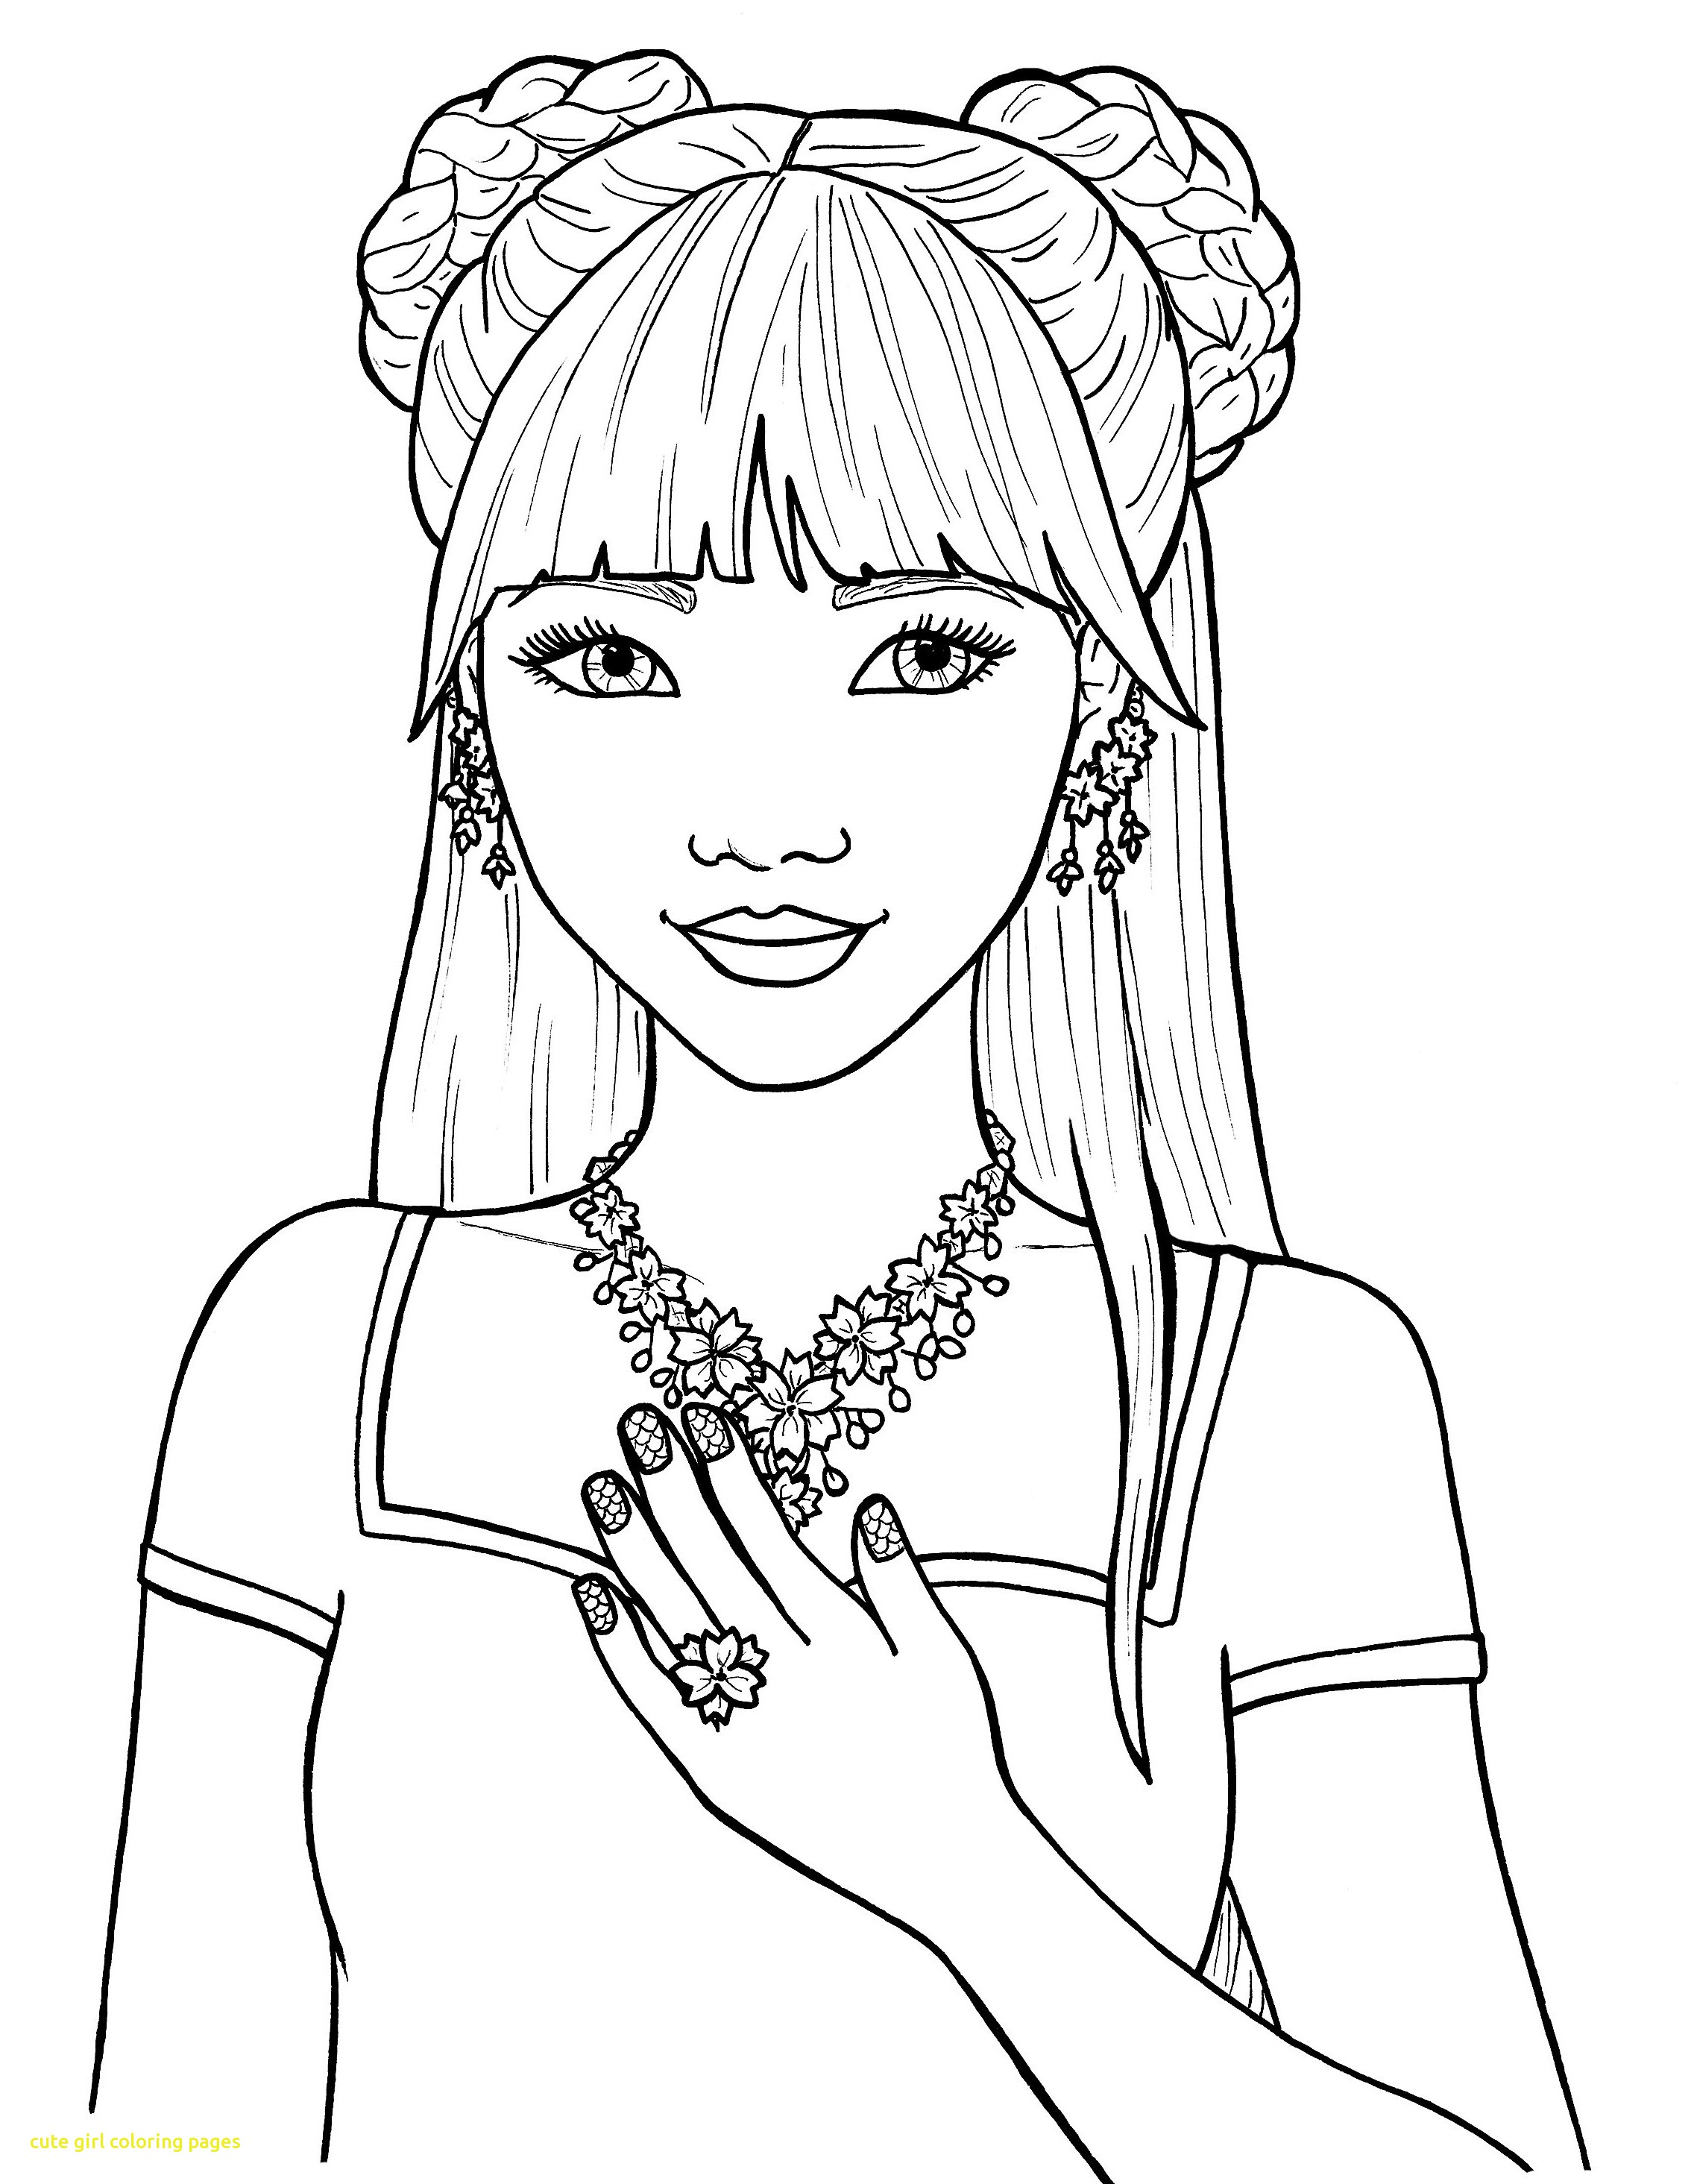 coloring pages of owl coloring pages for adults free detailed owl coloring coloring pages of